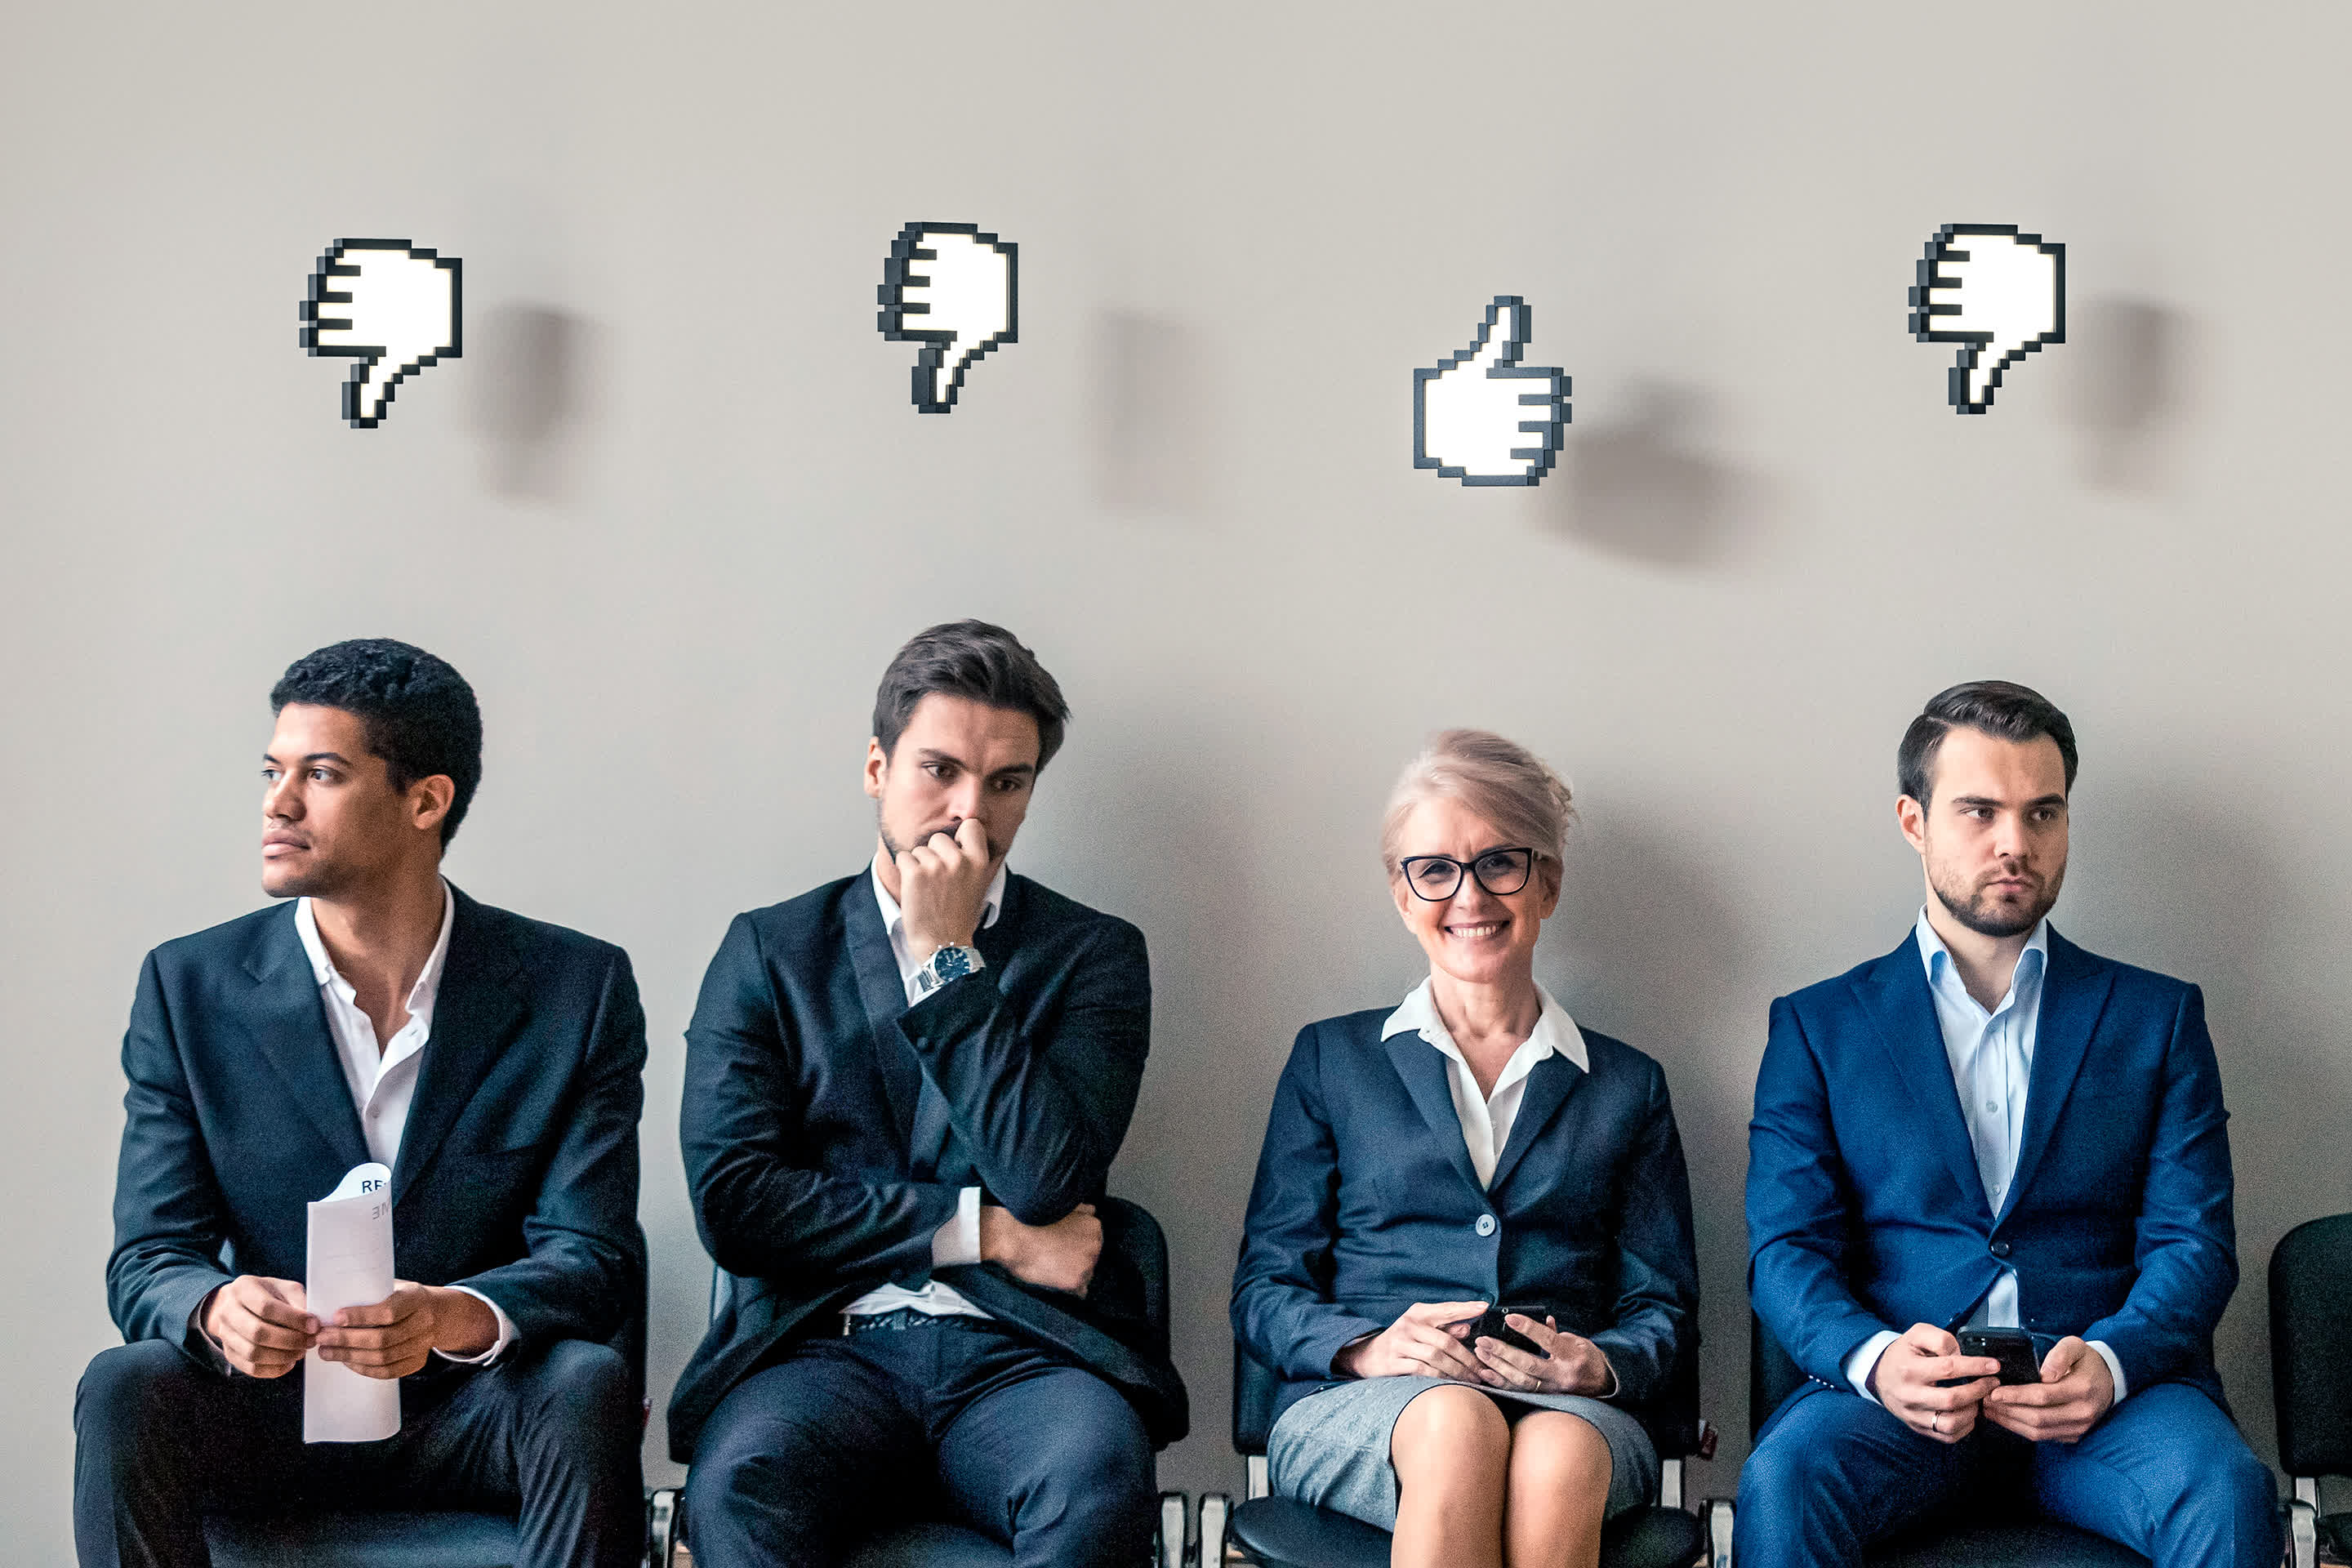 Automated hiring systems prevent millions of good candidates from getting through the front door